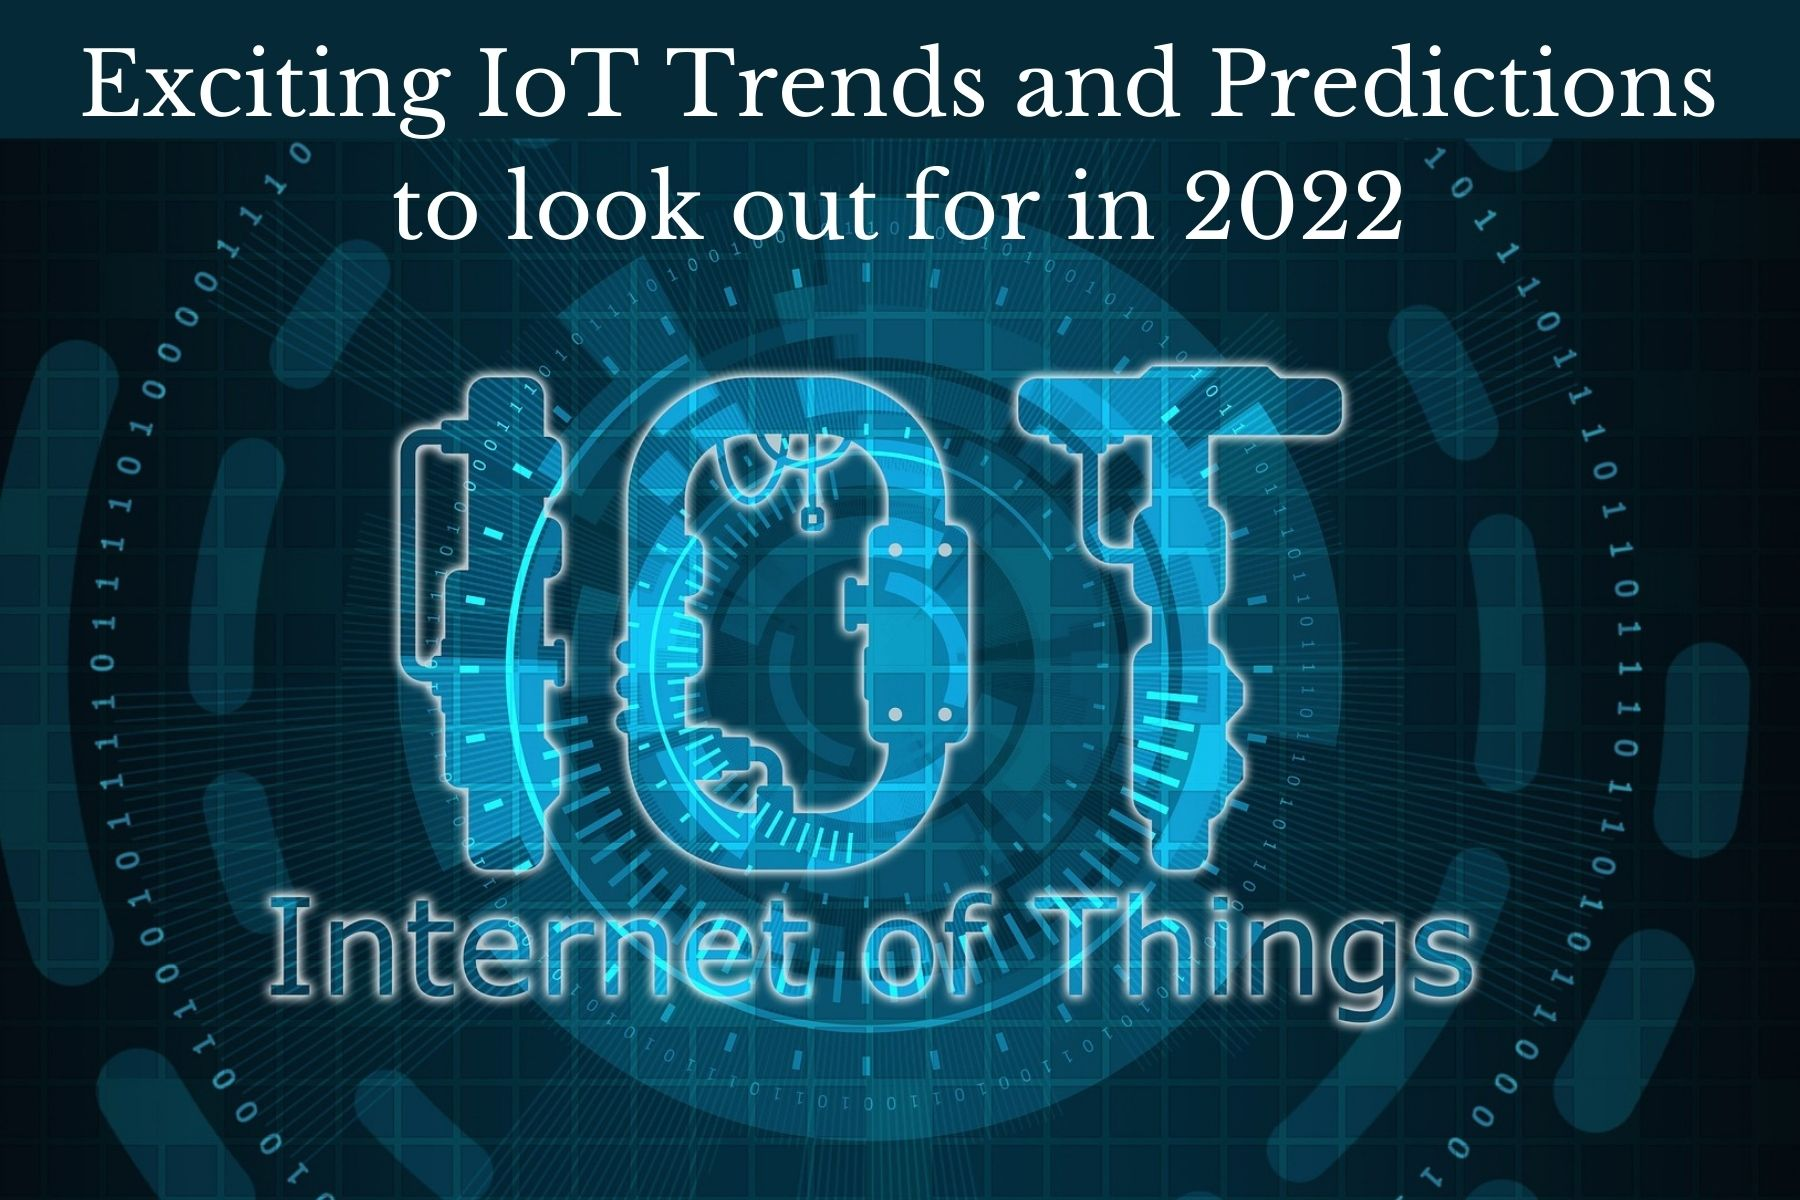 Exciting IoT Trends and Predictions to look out for in 2022